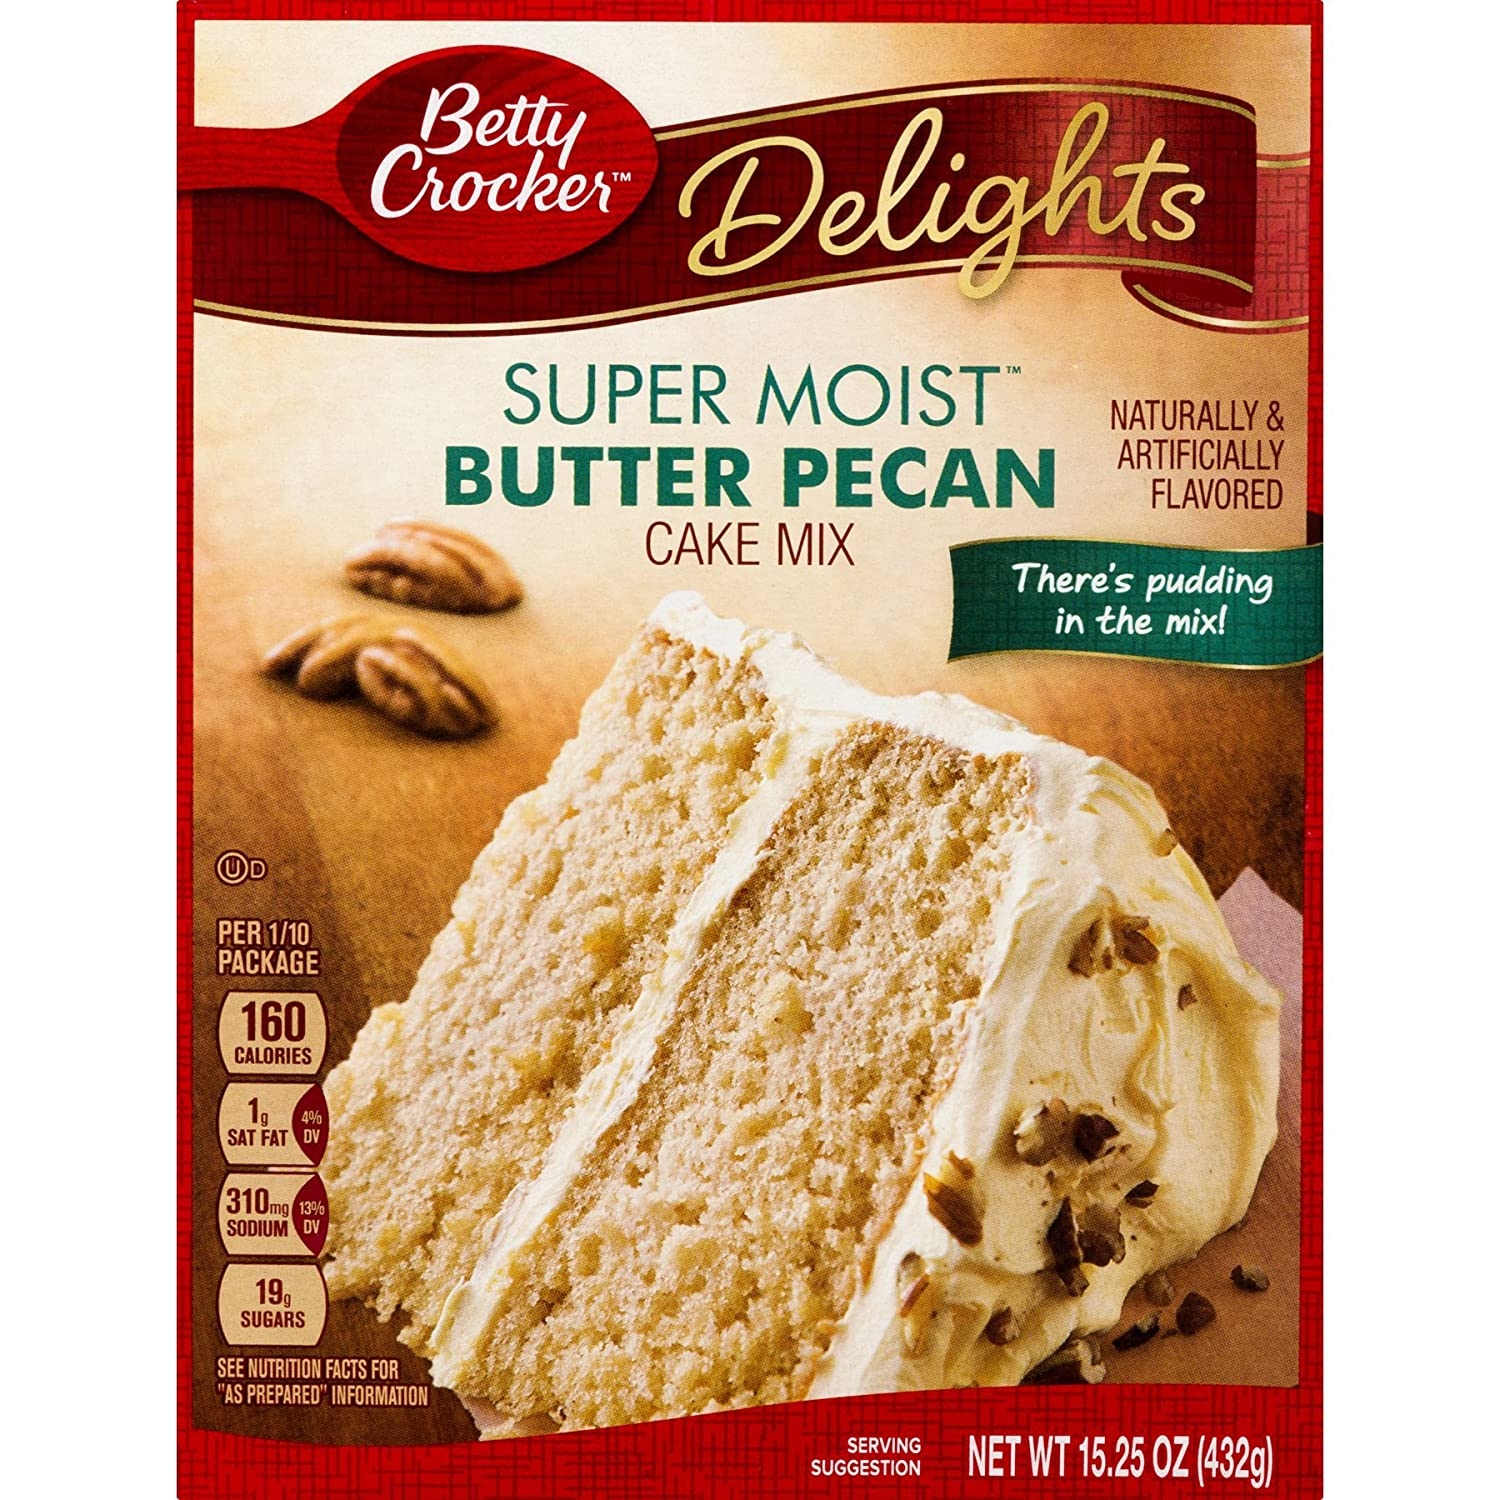 Amazon.com : Betty Crocker Super Moist Butter Pecan Cake Mix ...